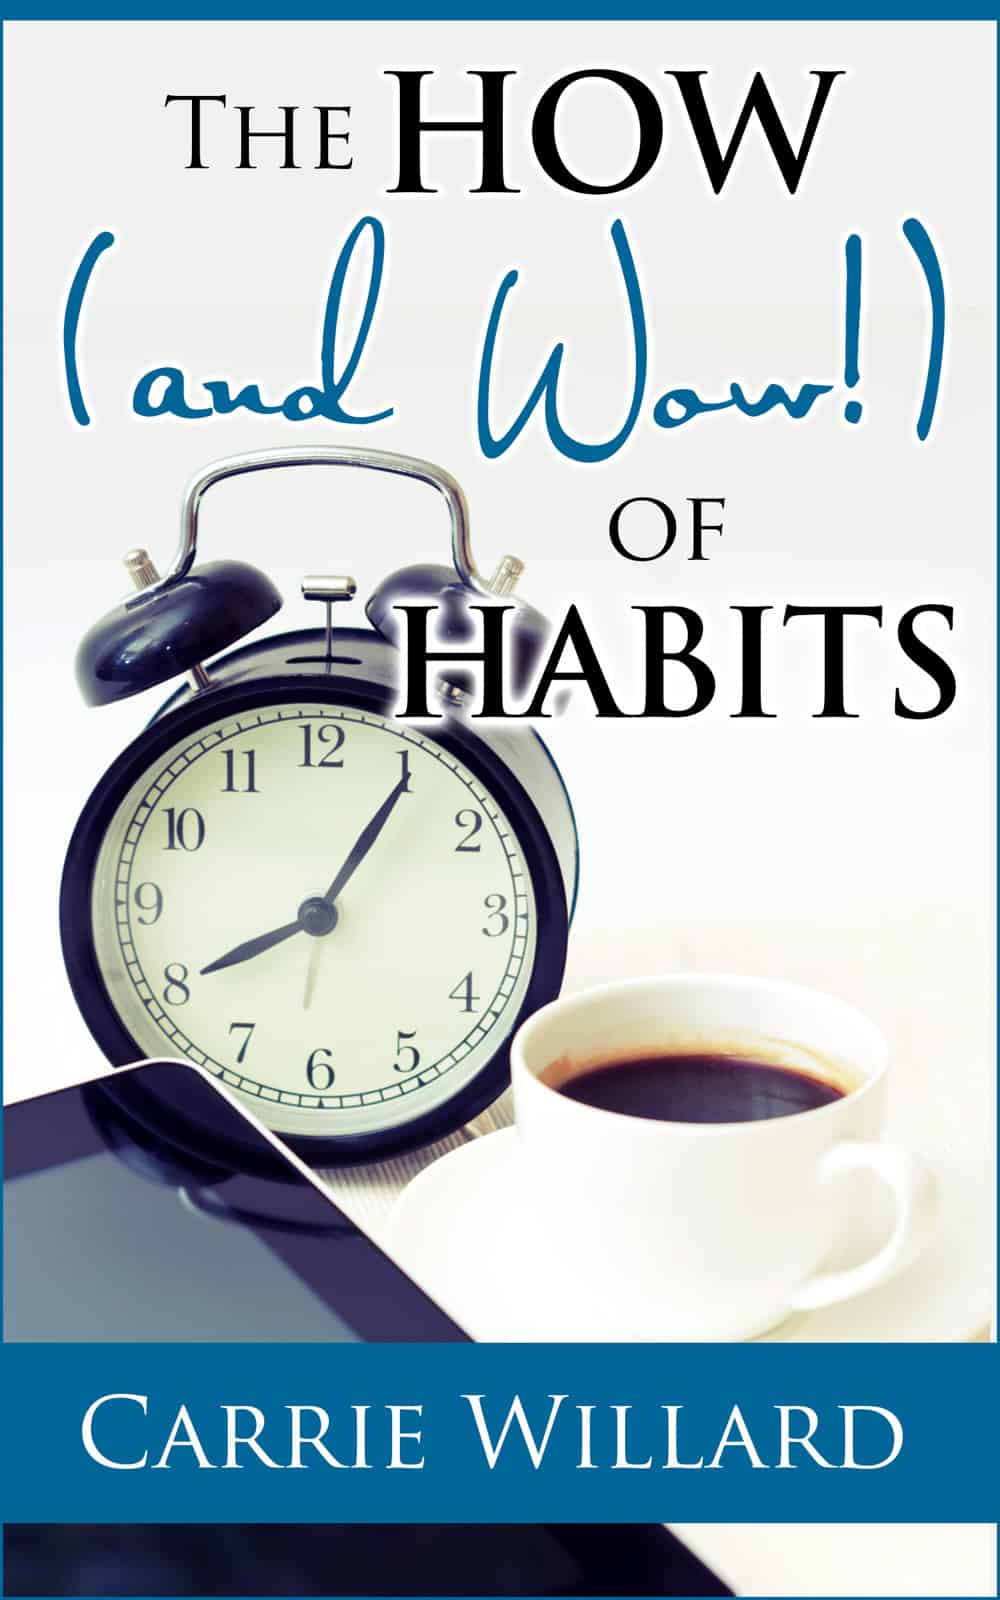 The How (and Wow!) of Habits by Carrie Willard